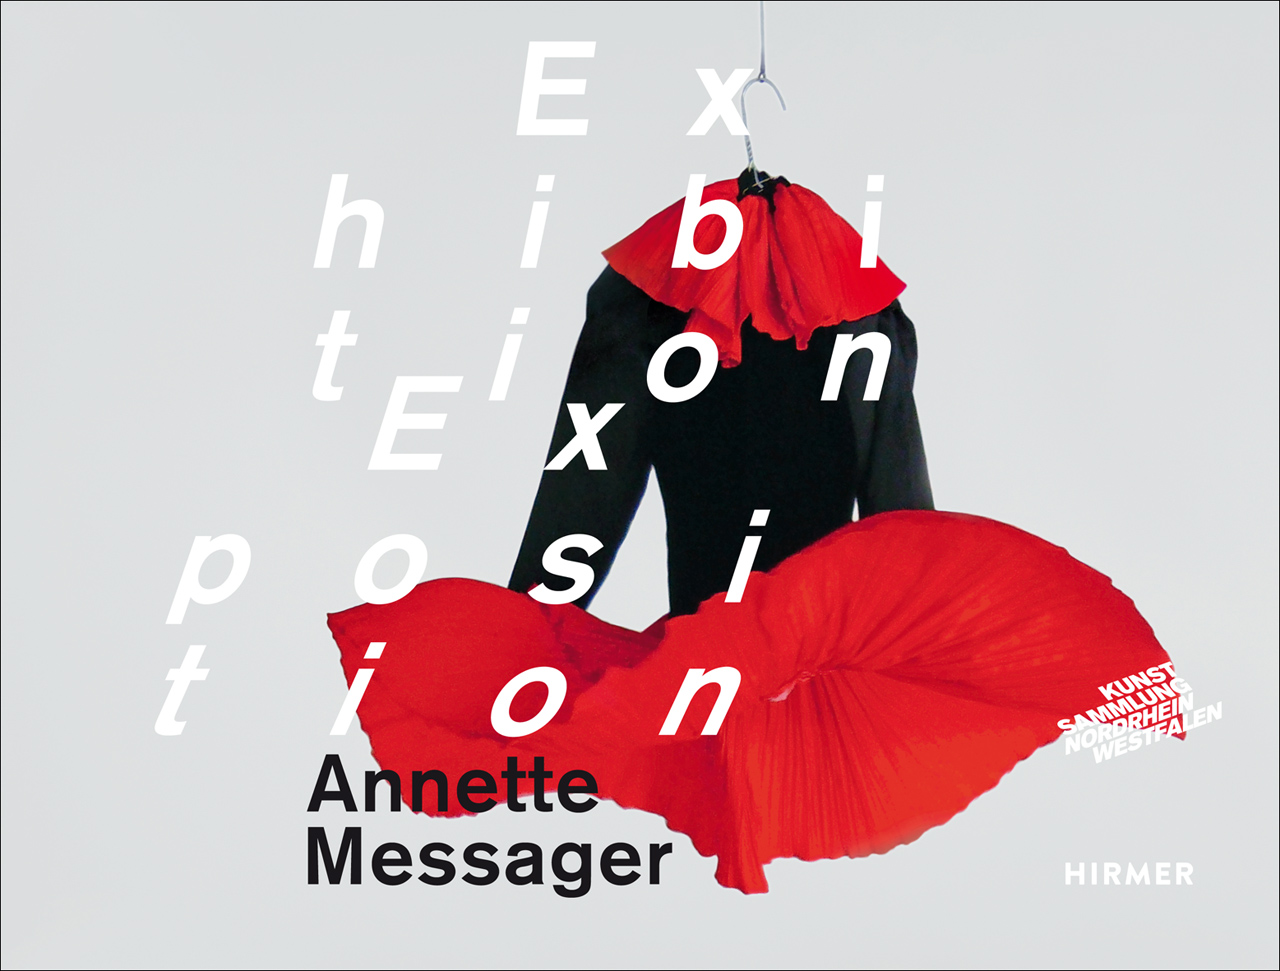 Annette Messager: Exhibition/Exposition